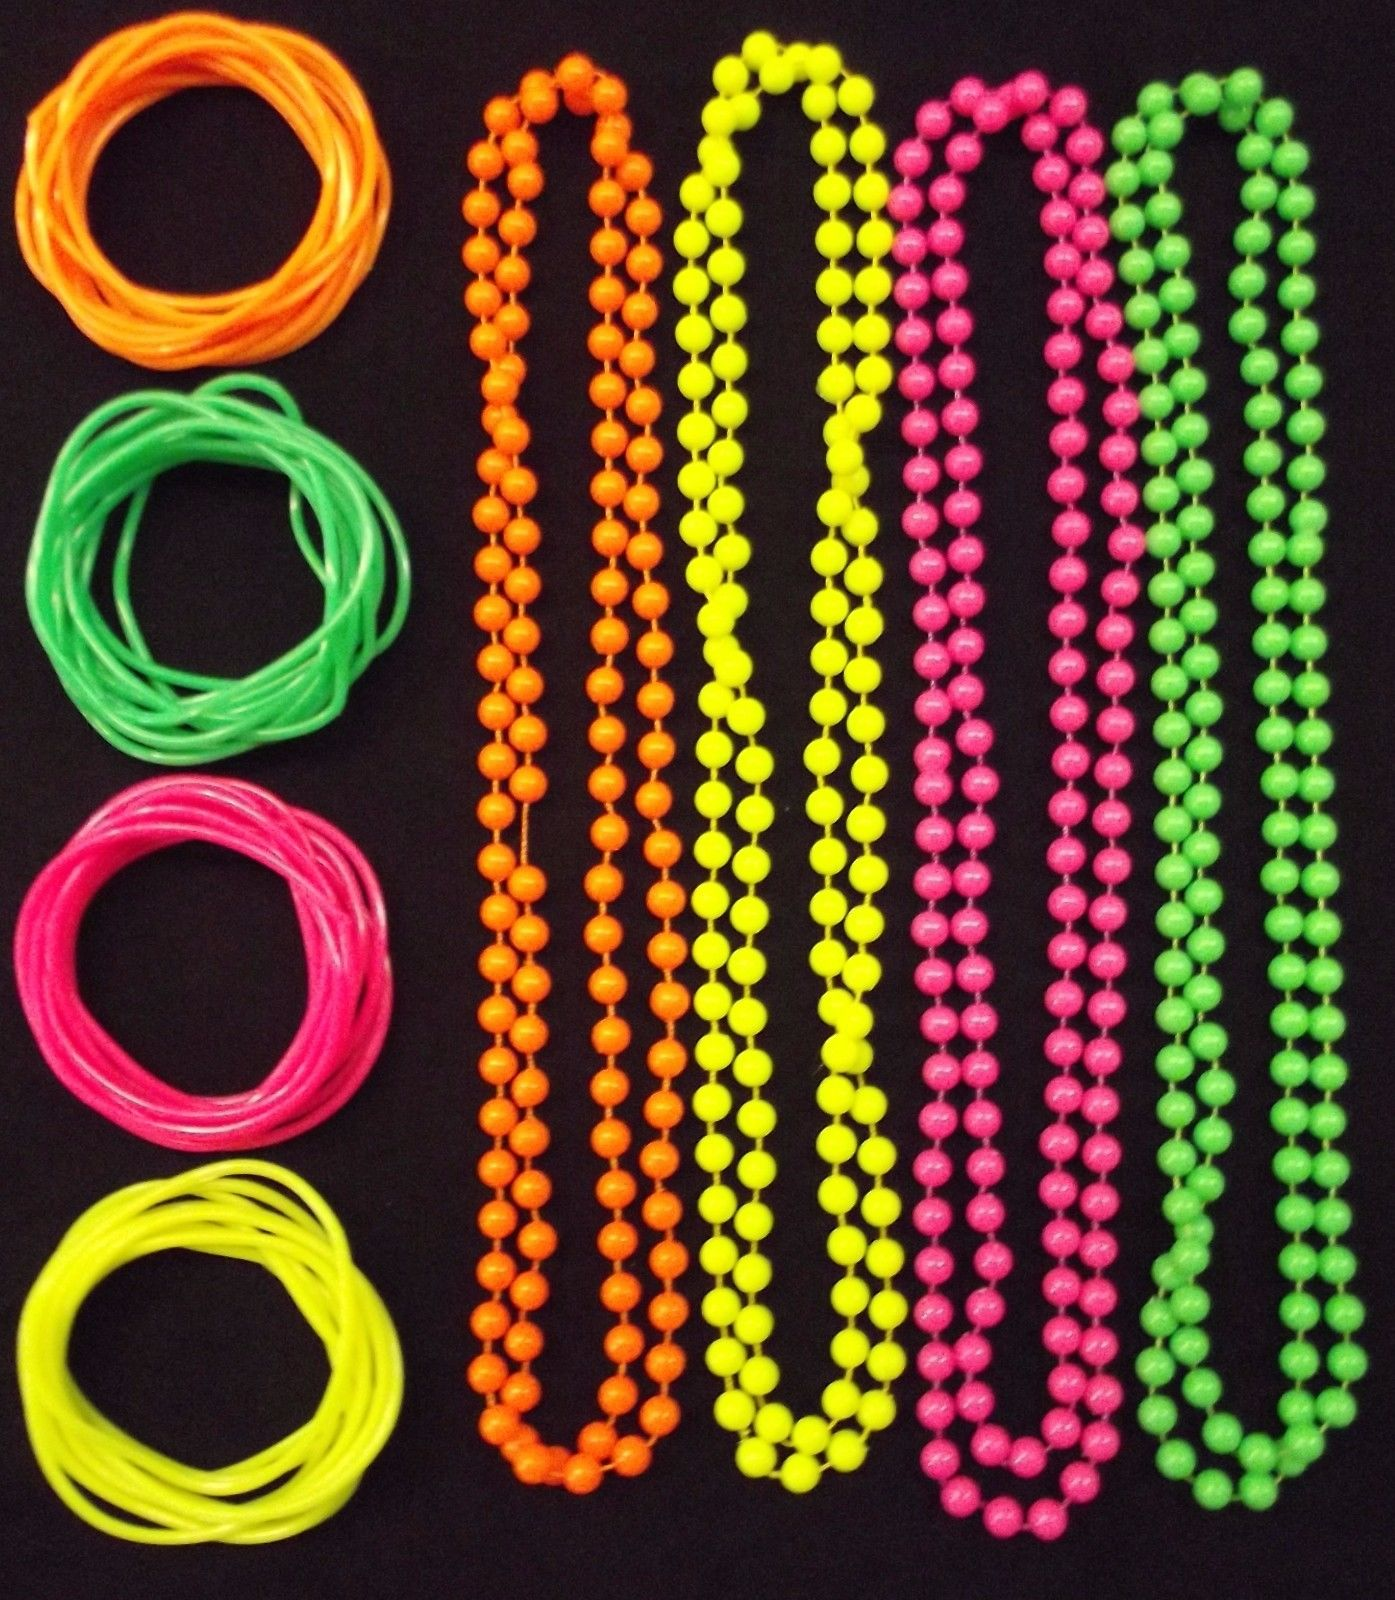 GUMMY BANGALS NECKLACE BEADS HEN PARTY